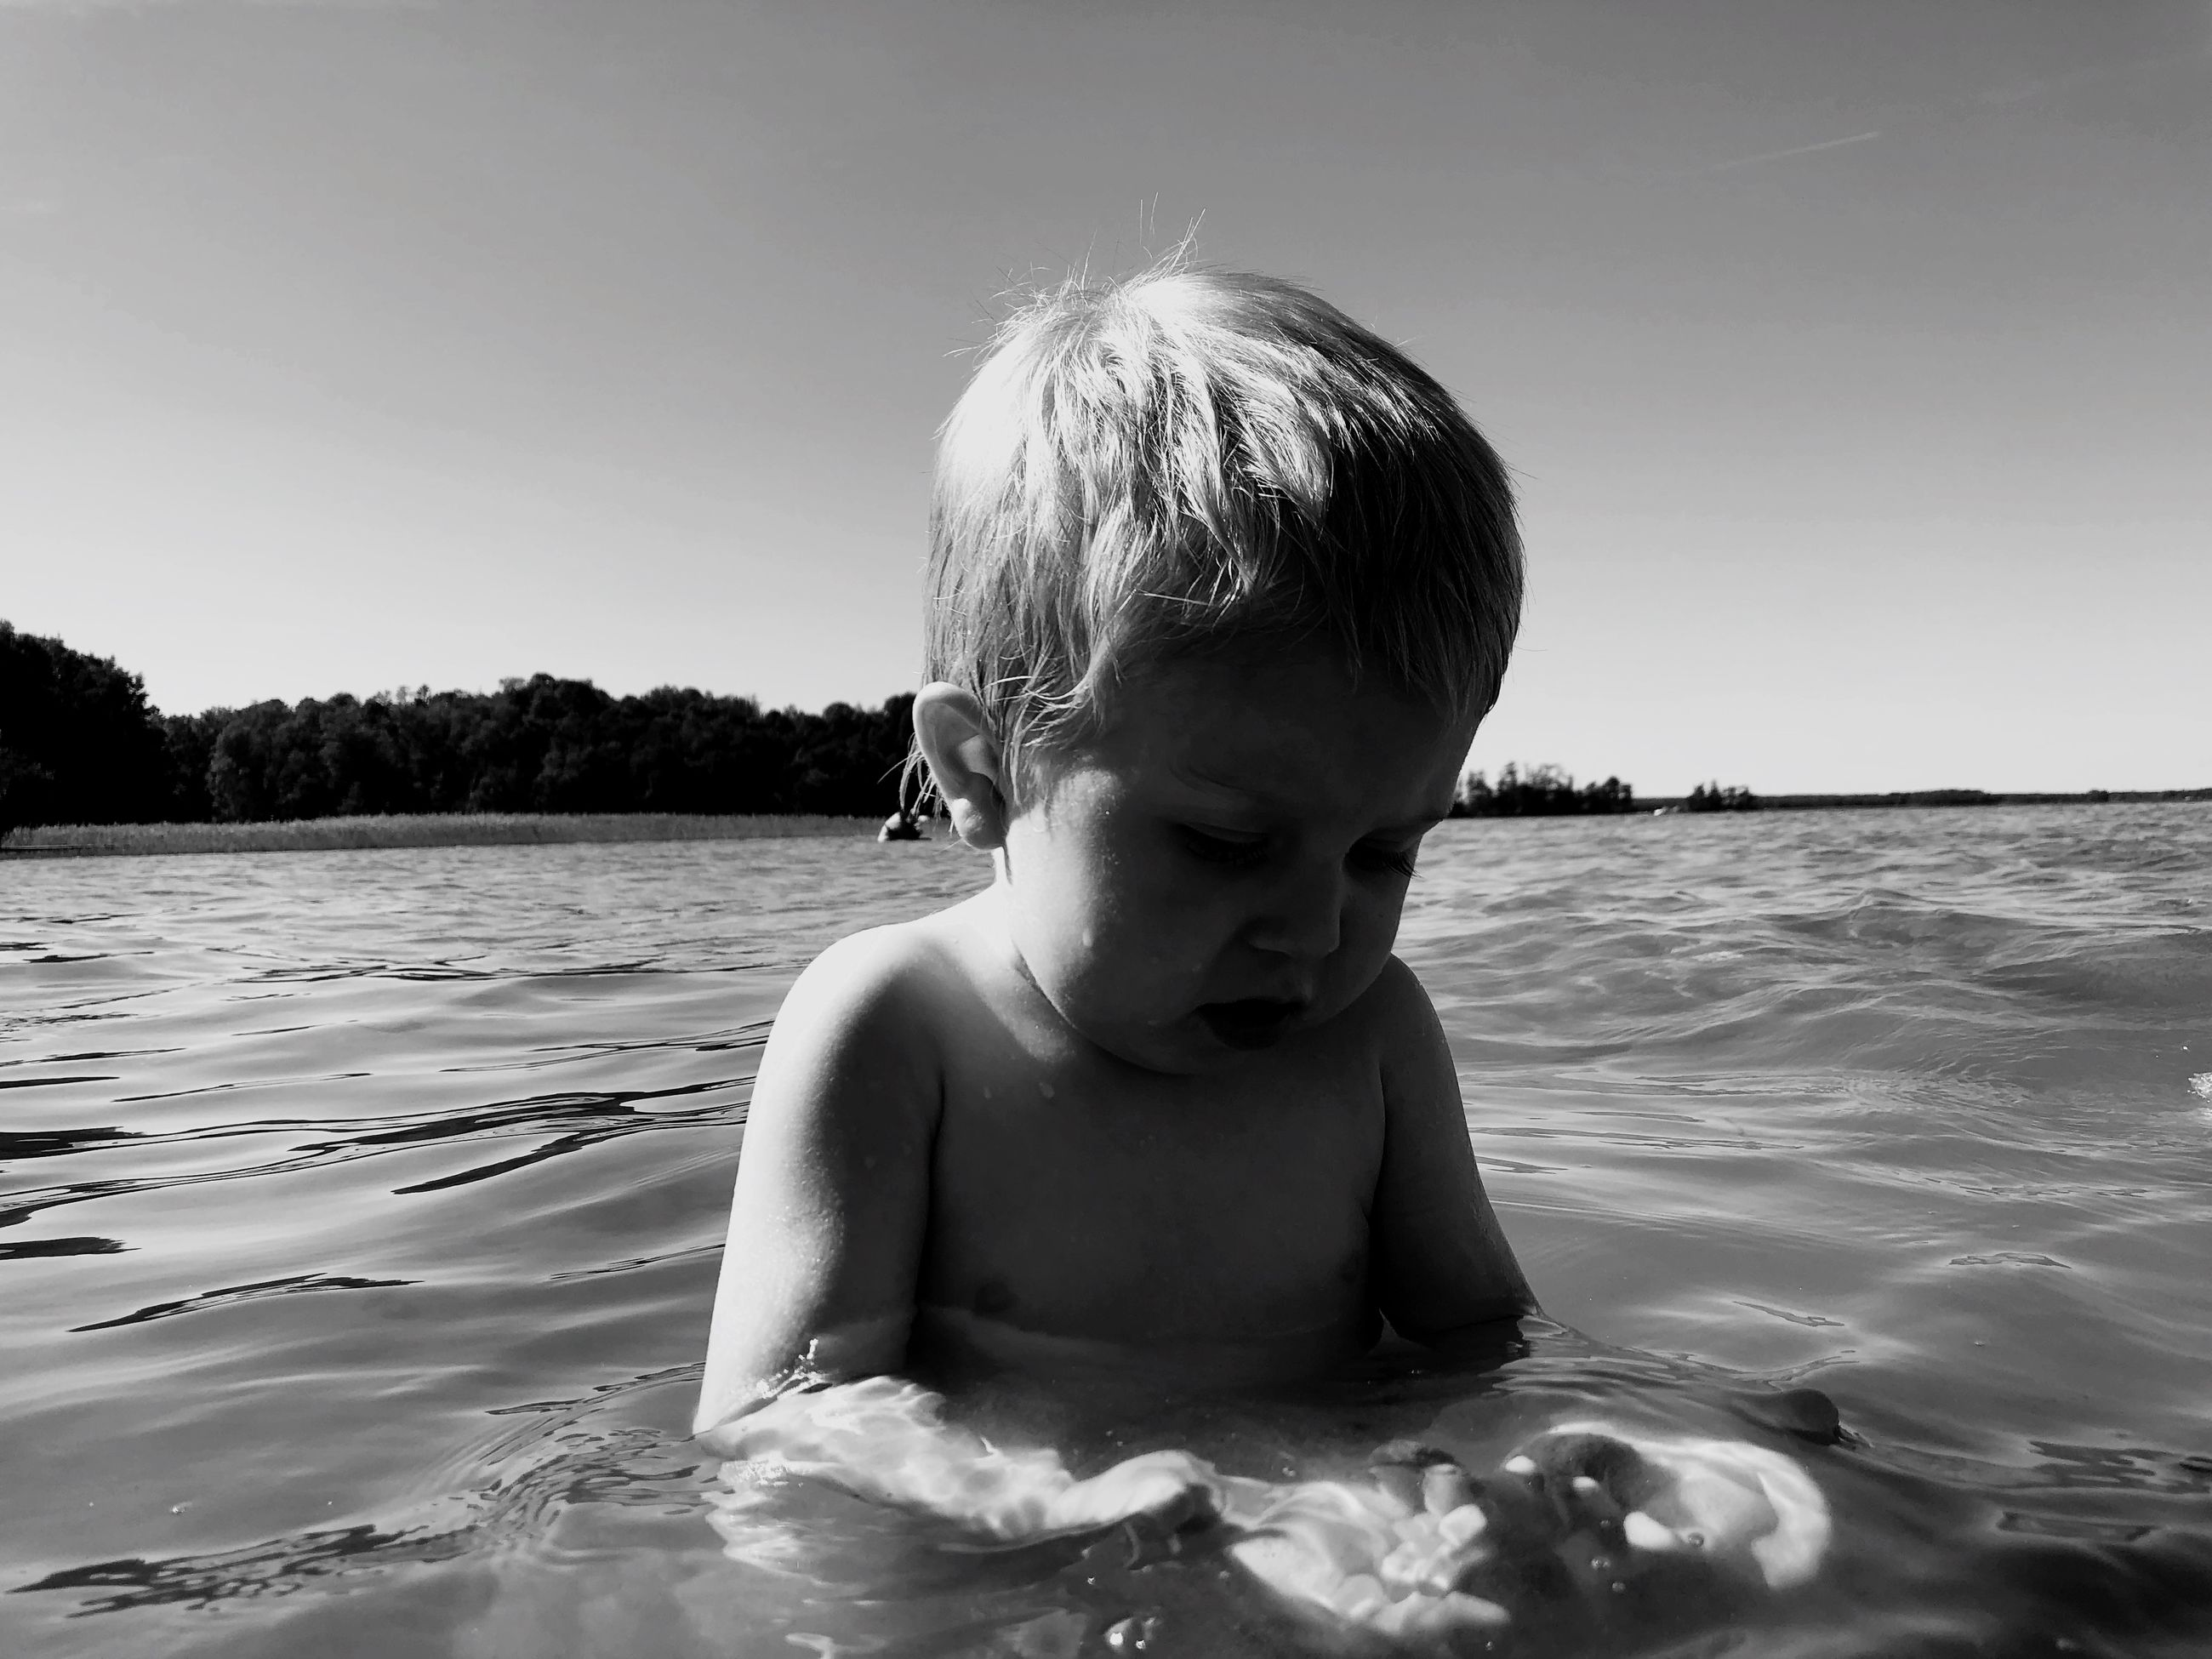 water, child, real people, childhood, one person, leisure activity, sky, sea, men, shirtless, lifestyles, headshot, waterfront, nature, looking, day, innocence, outdoors